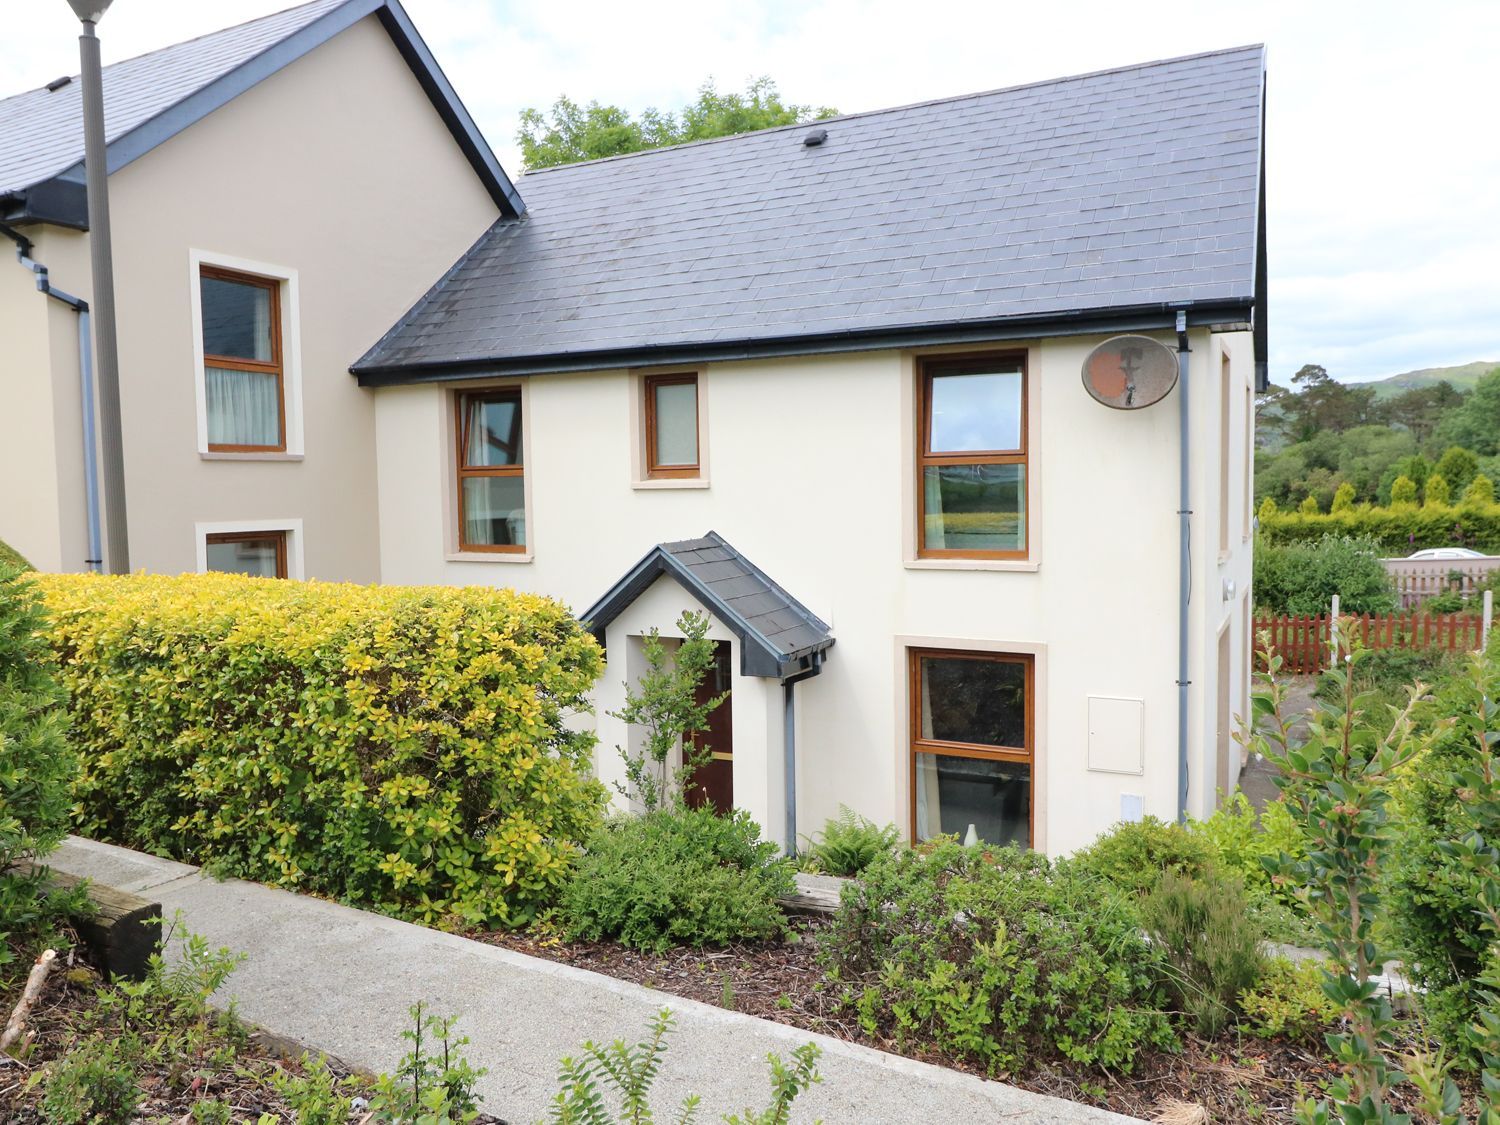 23 Mountain View - Kinsale & County Cork - 988283 - photo 1